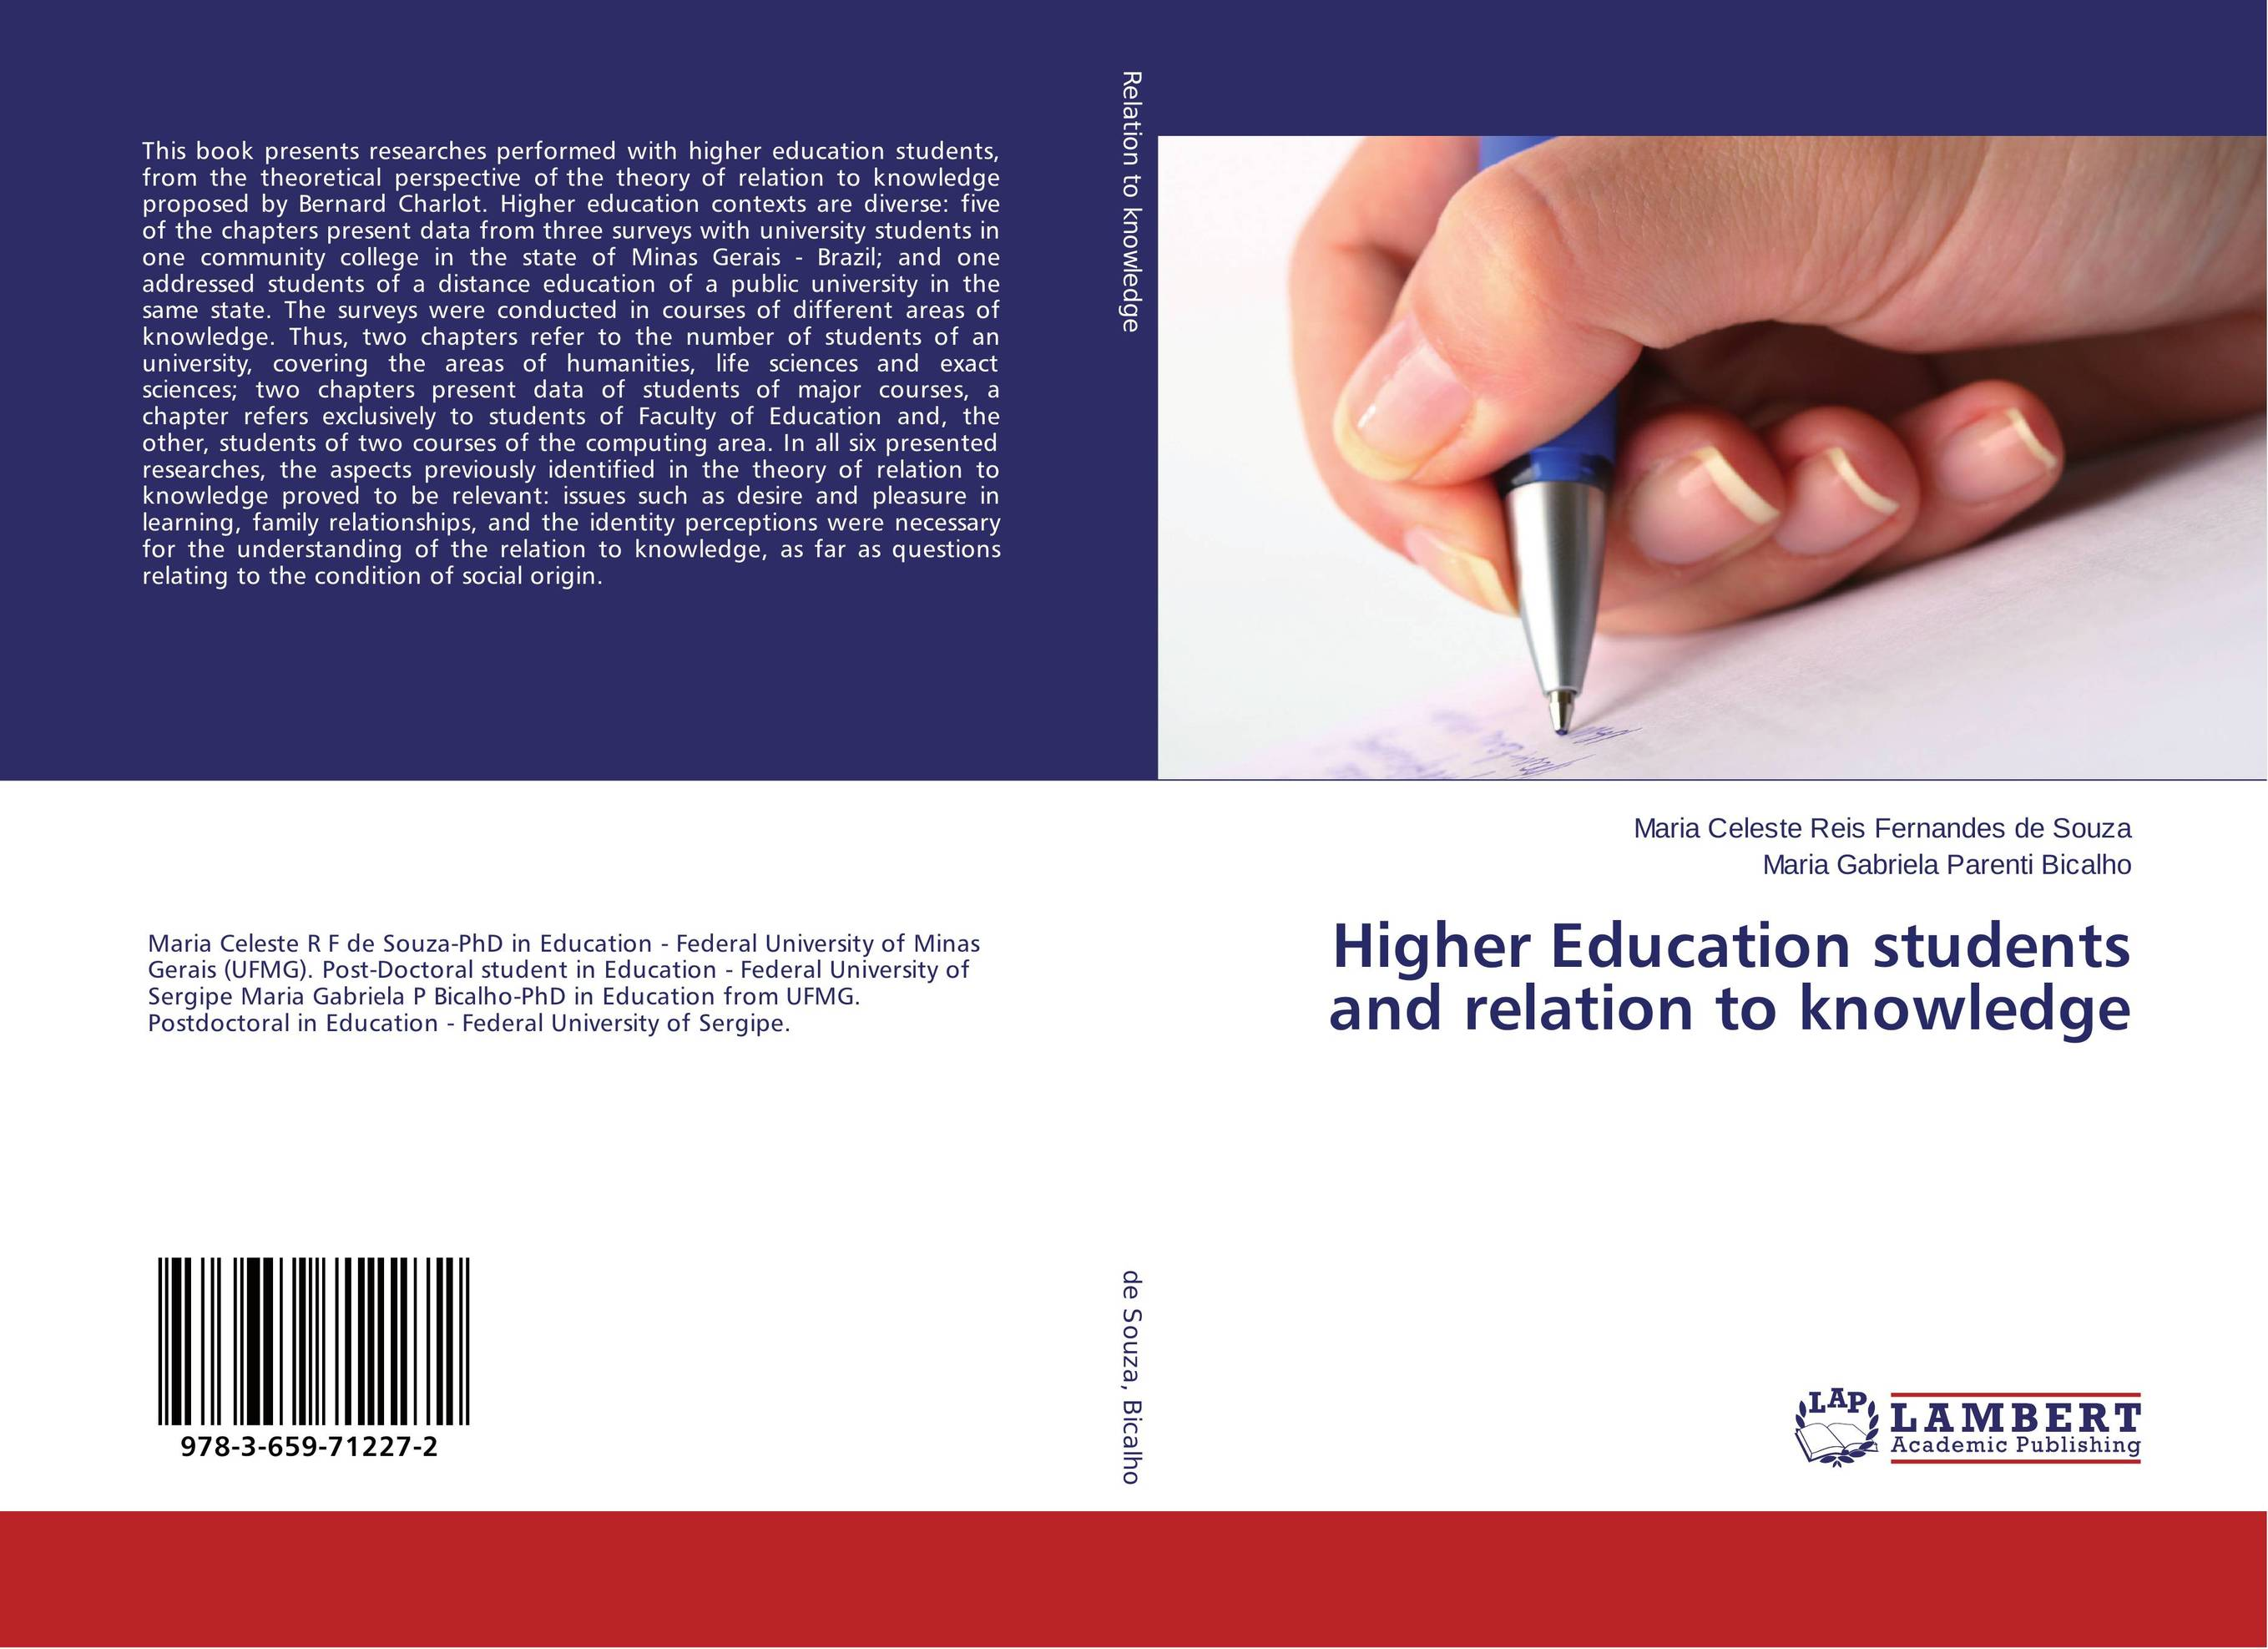 Higher Education students and relation to knowledge peace education at the national university of rwanda